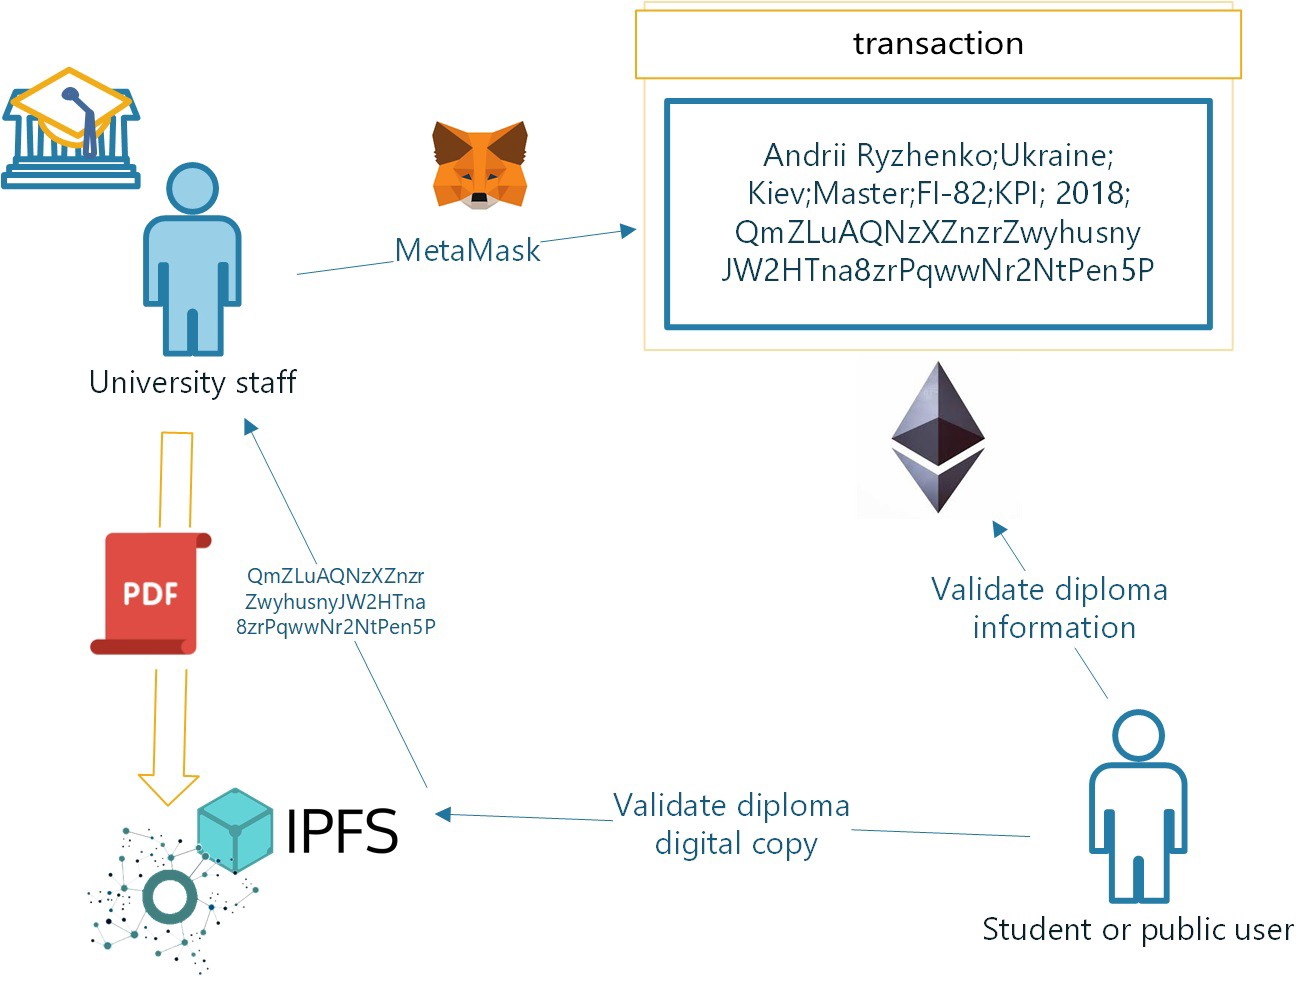 /develop-blockchain-trusted-diploma-verification-system-in-15-minutes-step-by-step-instruction-fdcf37a244ab feature image